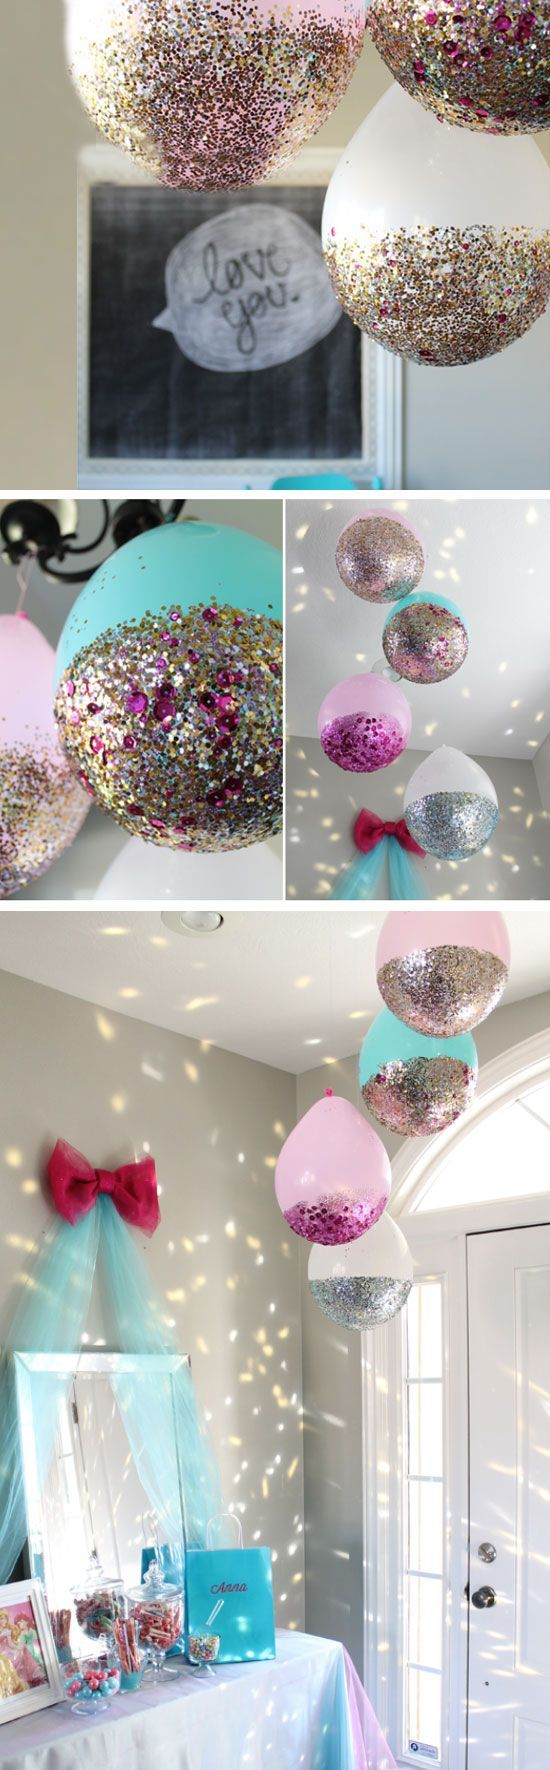 These glitter balloons are so beautiful and